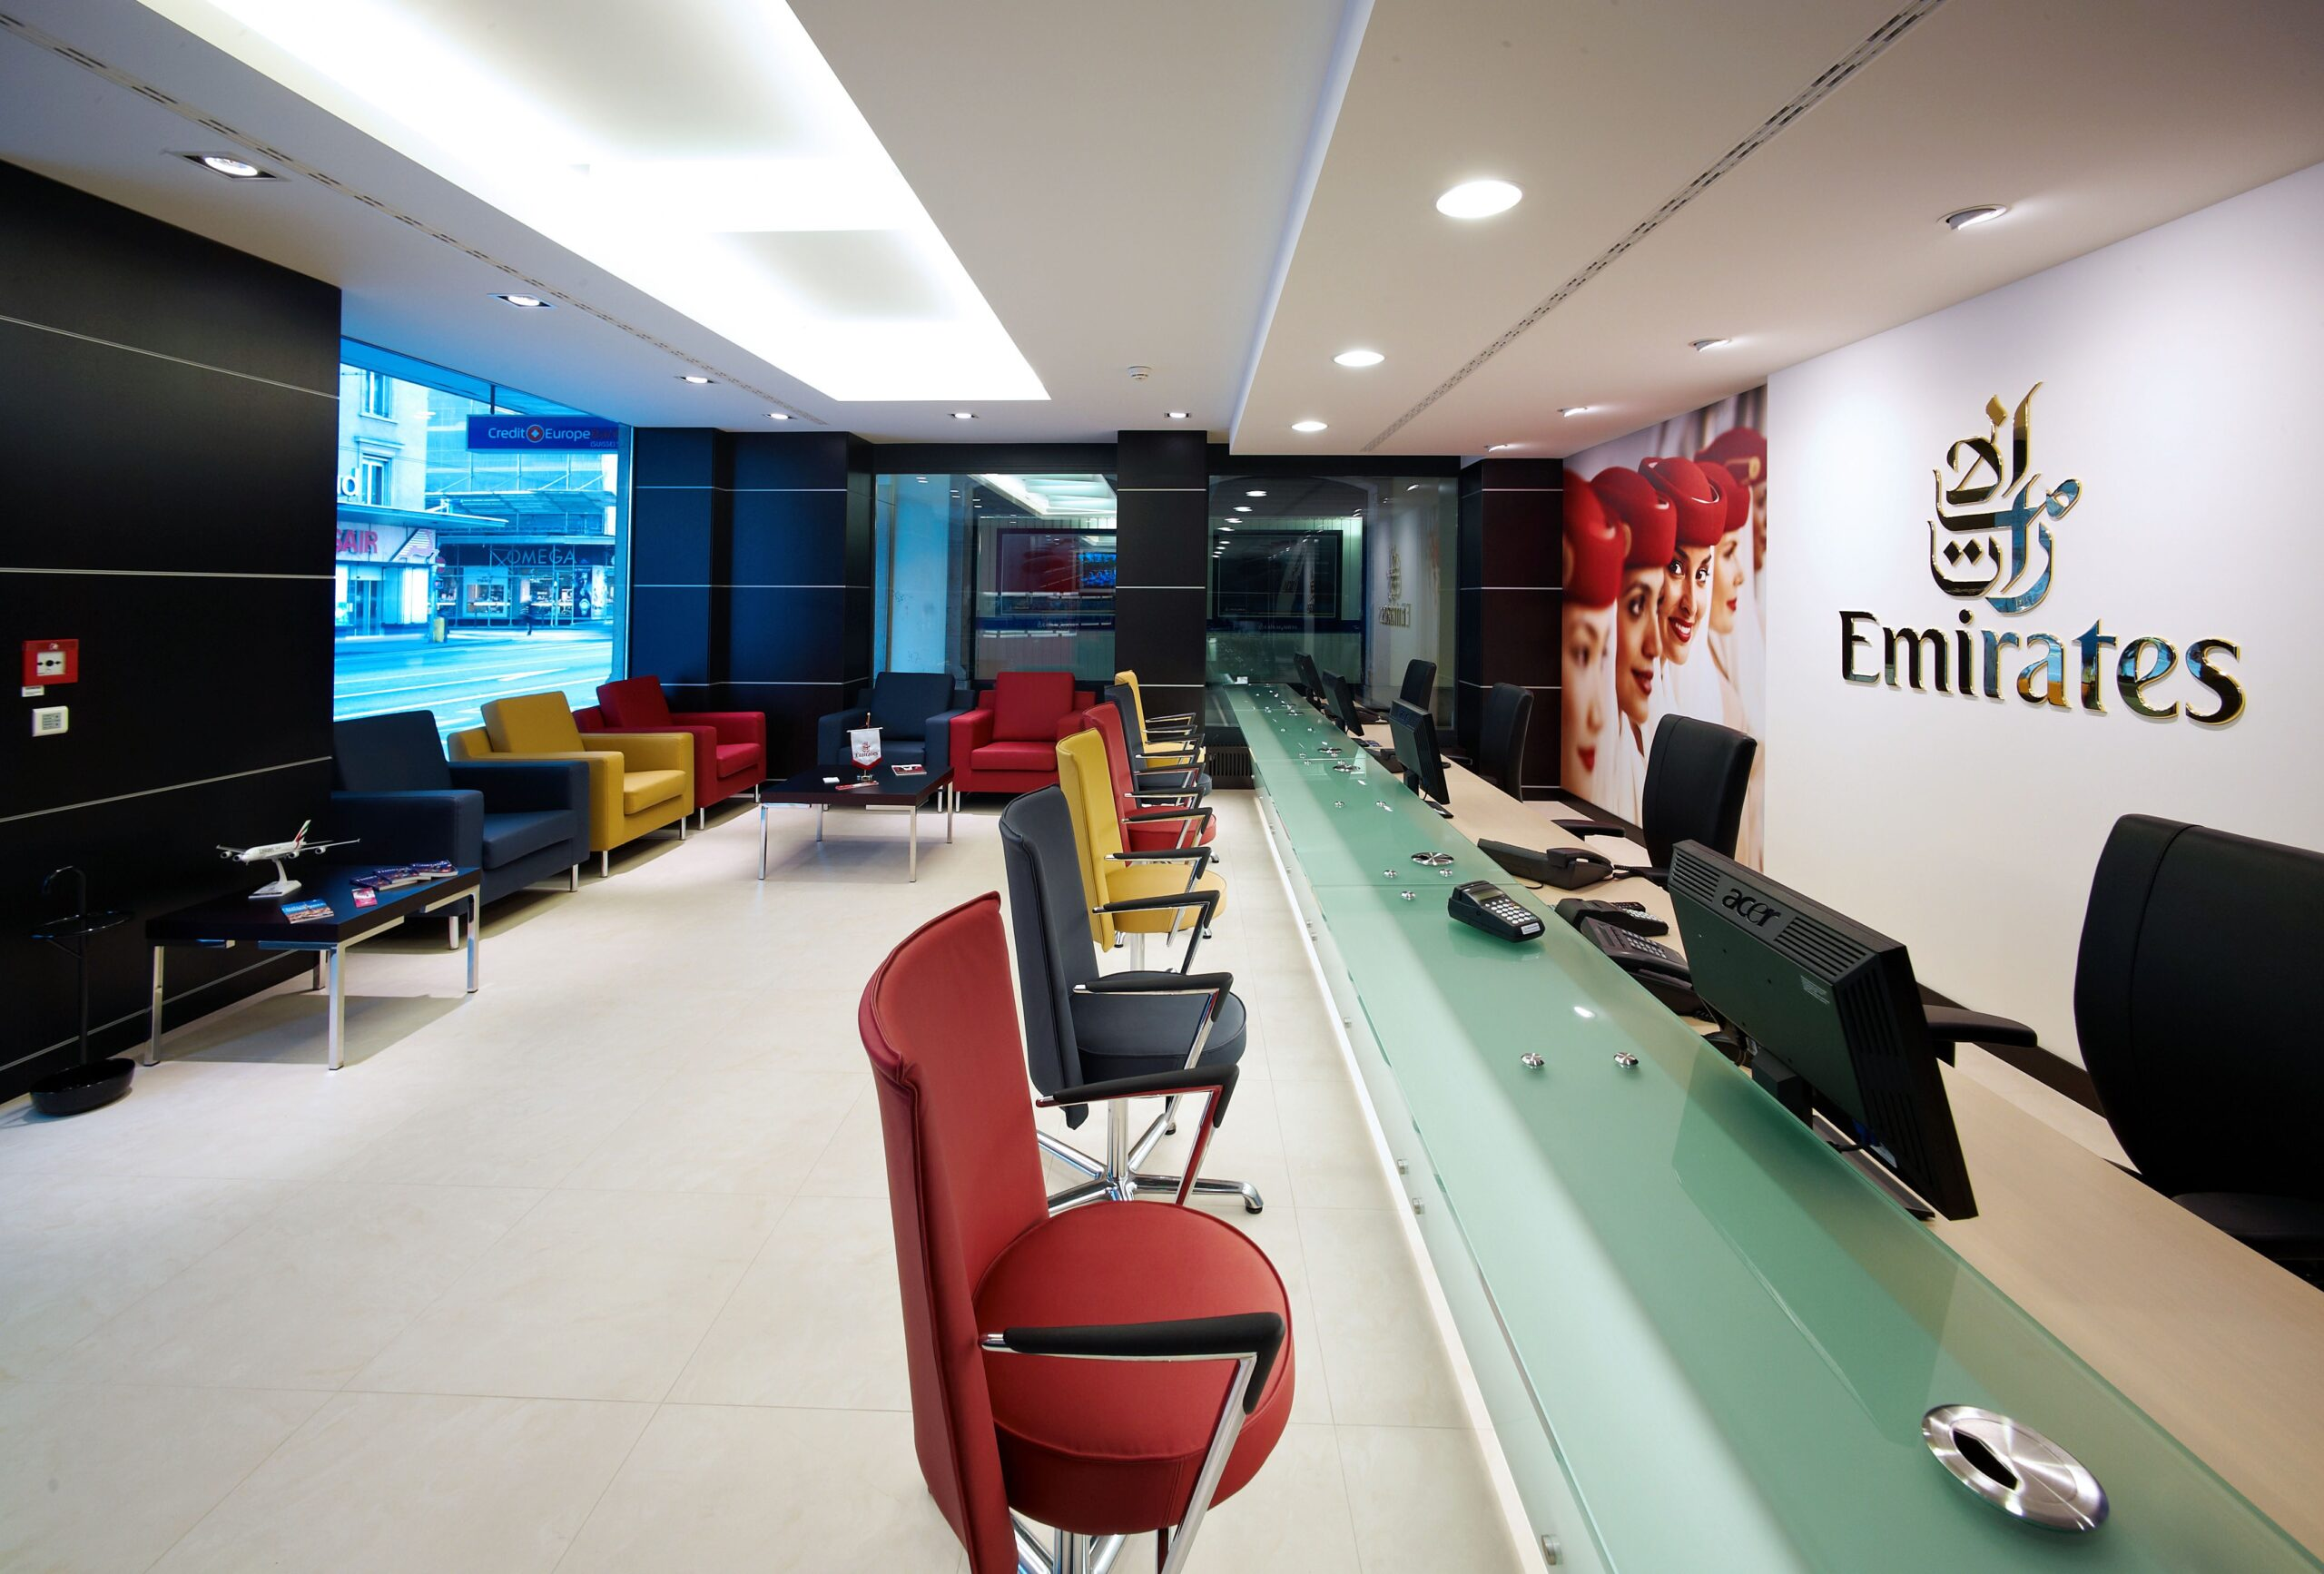 Emirates Airlines Office Address   Phone Number   Ticket Booking